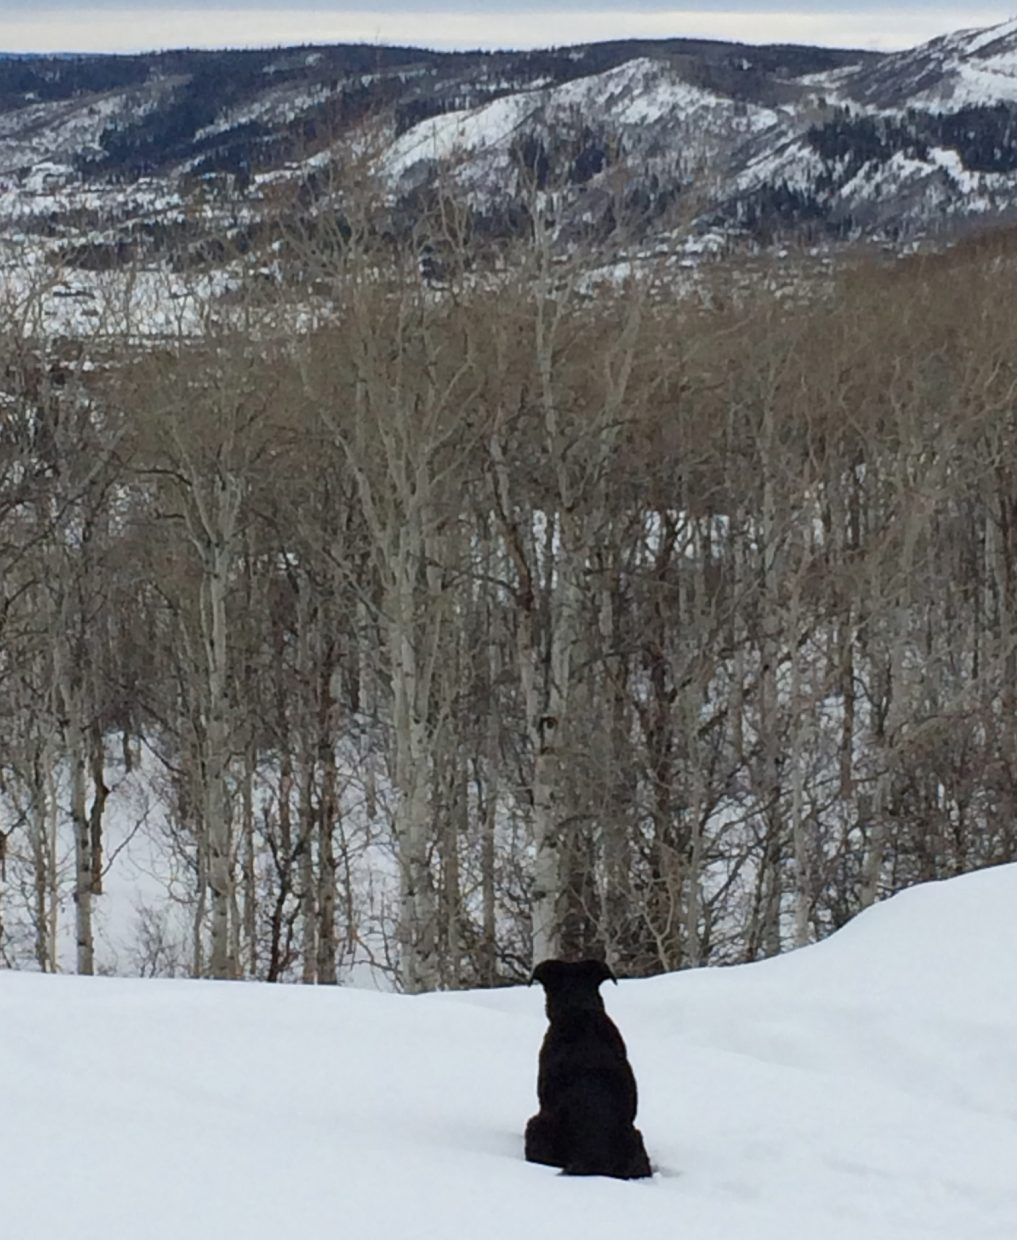 Buddy, enjoying the views from skyline trail. Submitted by Jane Williams.